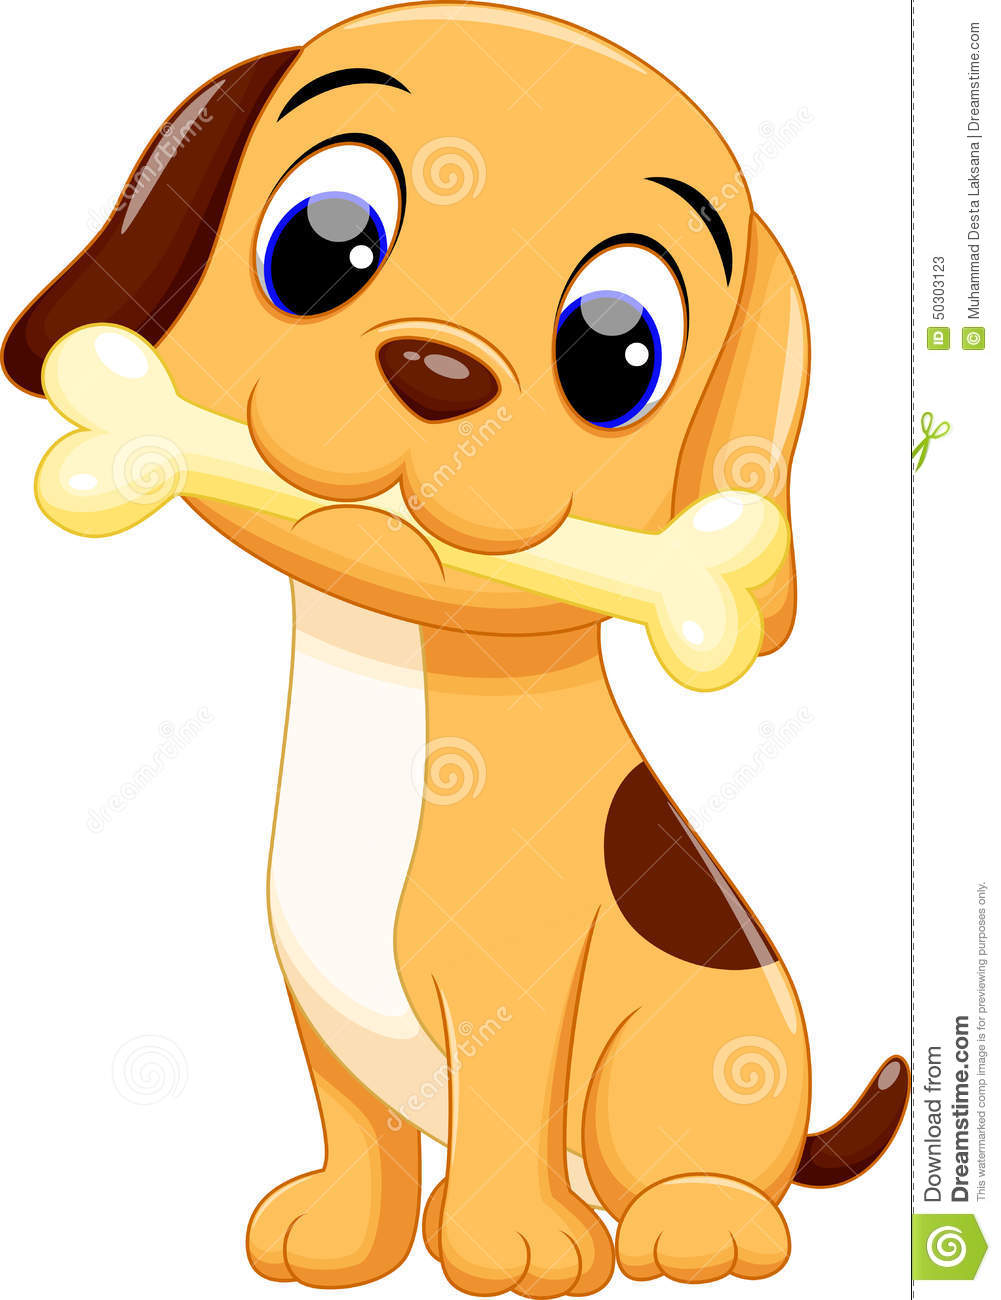 Cute Dog Cartoon Stock Illustration Illustration Of Drool 50303123